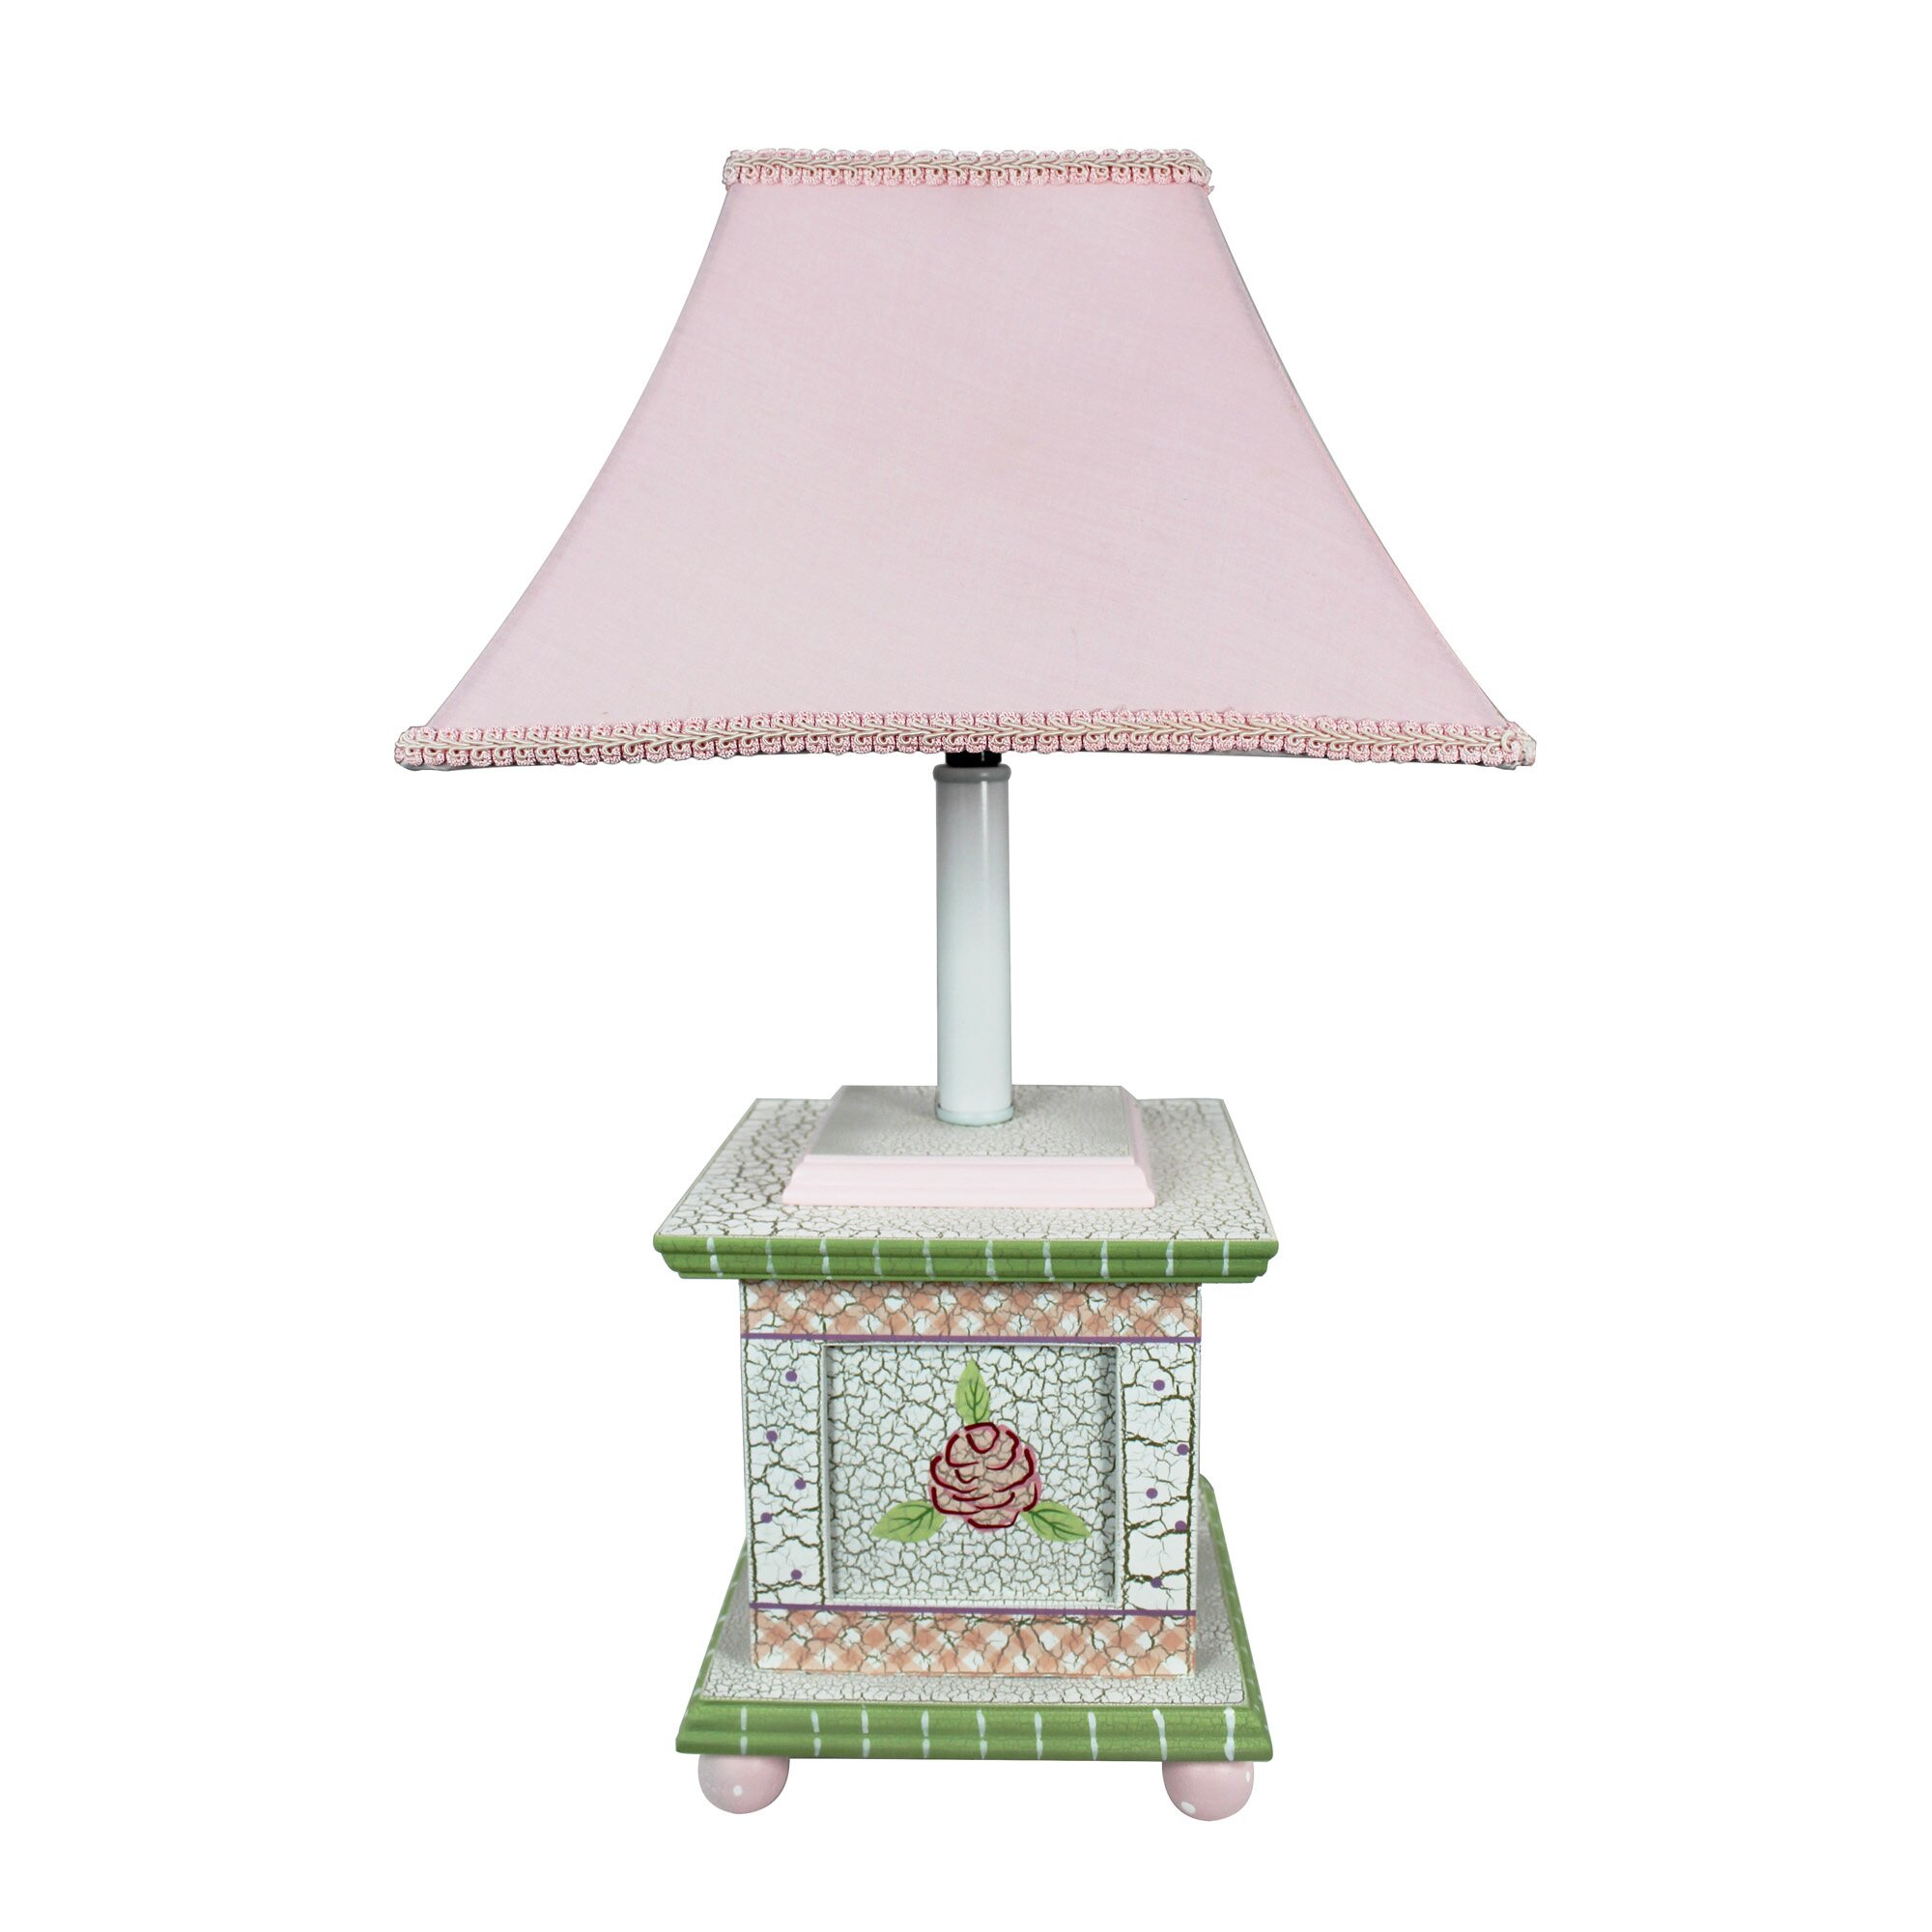 Lava lamp near me - Fantasy Fields Crackled Rose 21 Quot Table Lamp